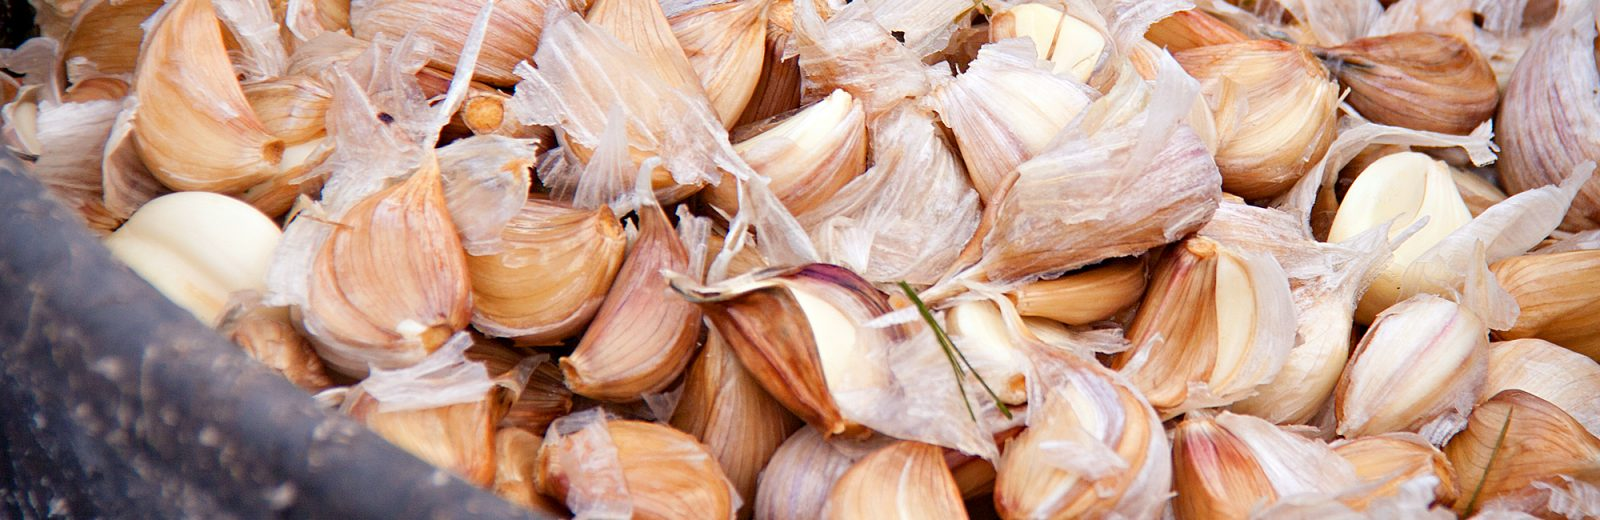 Garlic Closeup